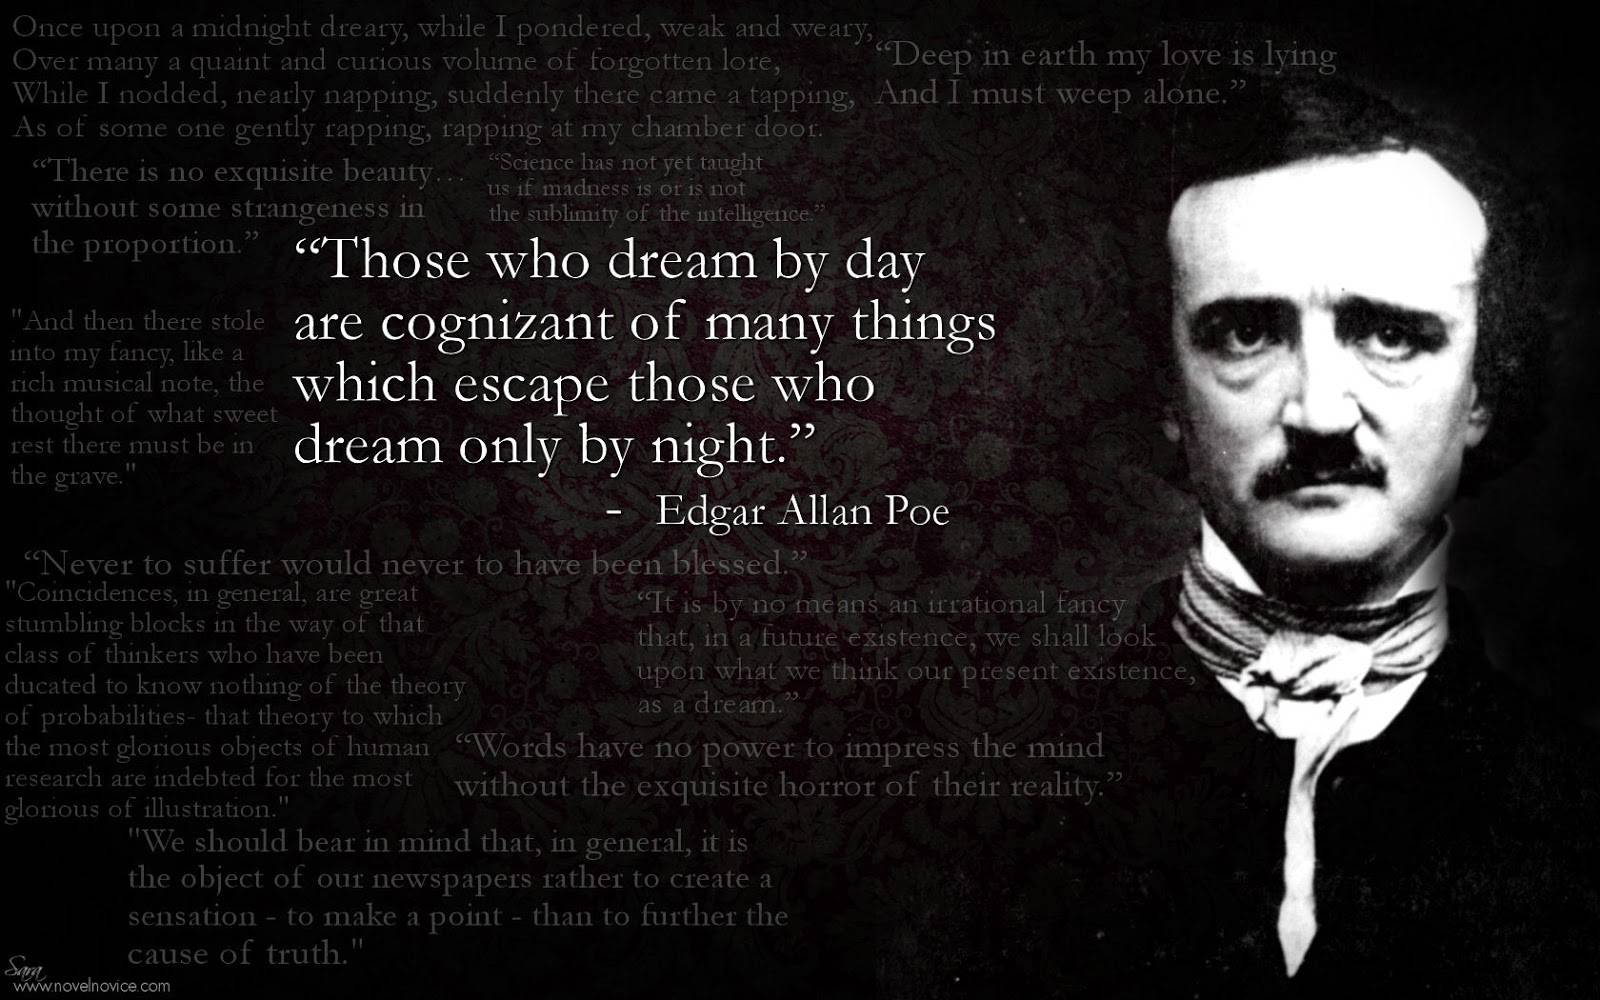 edgar allan poe archives murphy s law 409726 edgar allan poe edgar allan poe quotes